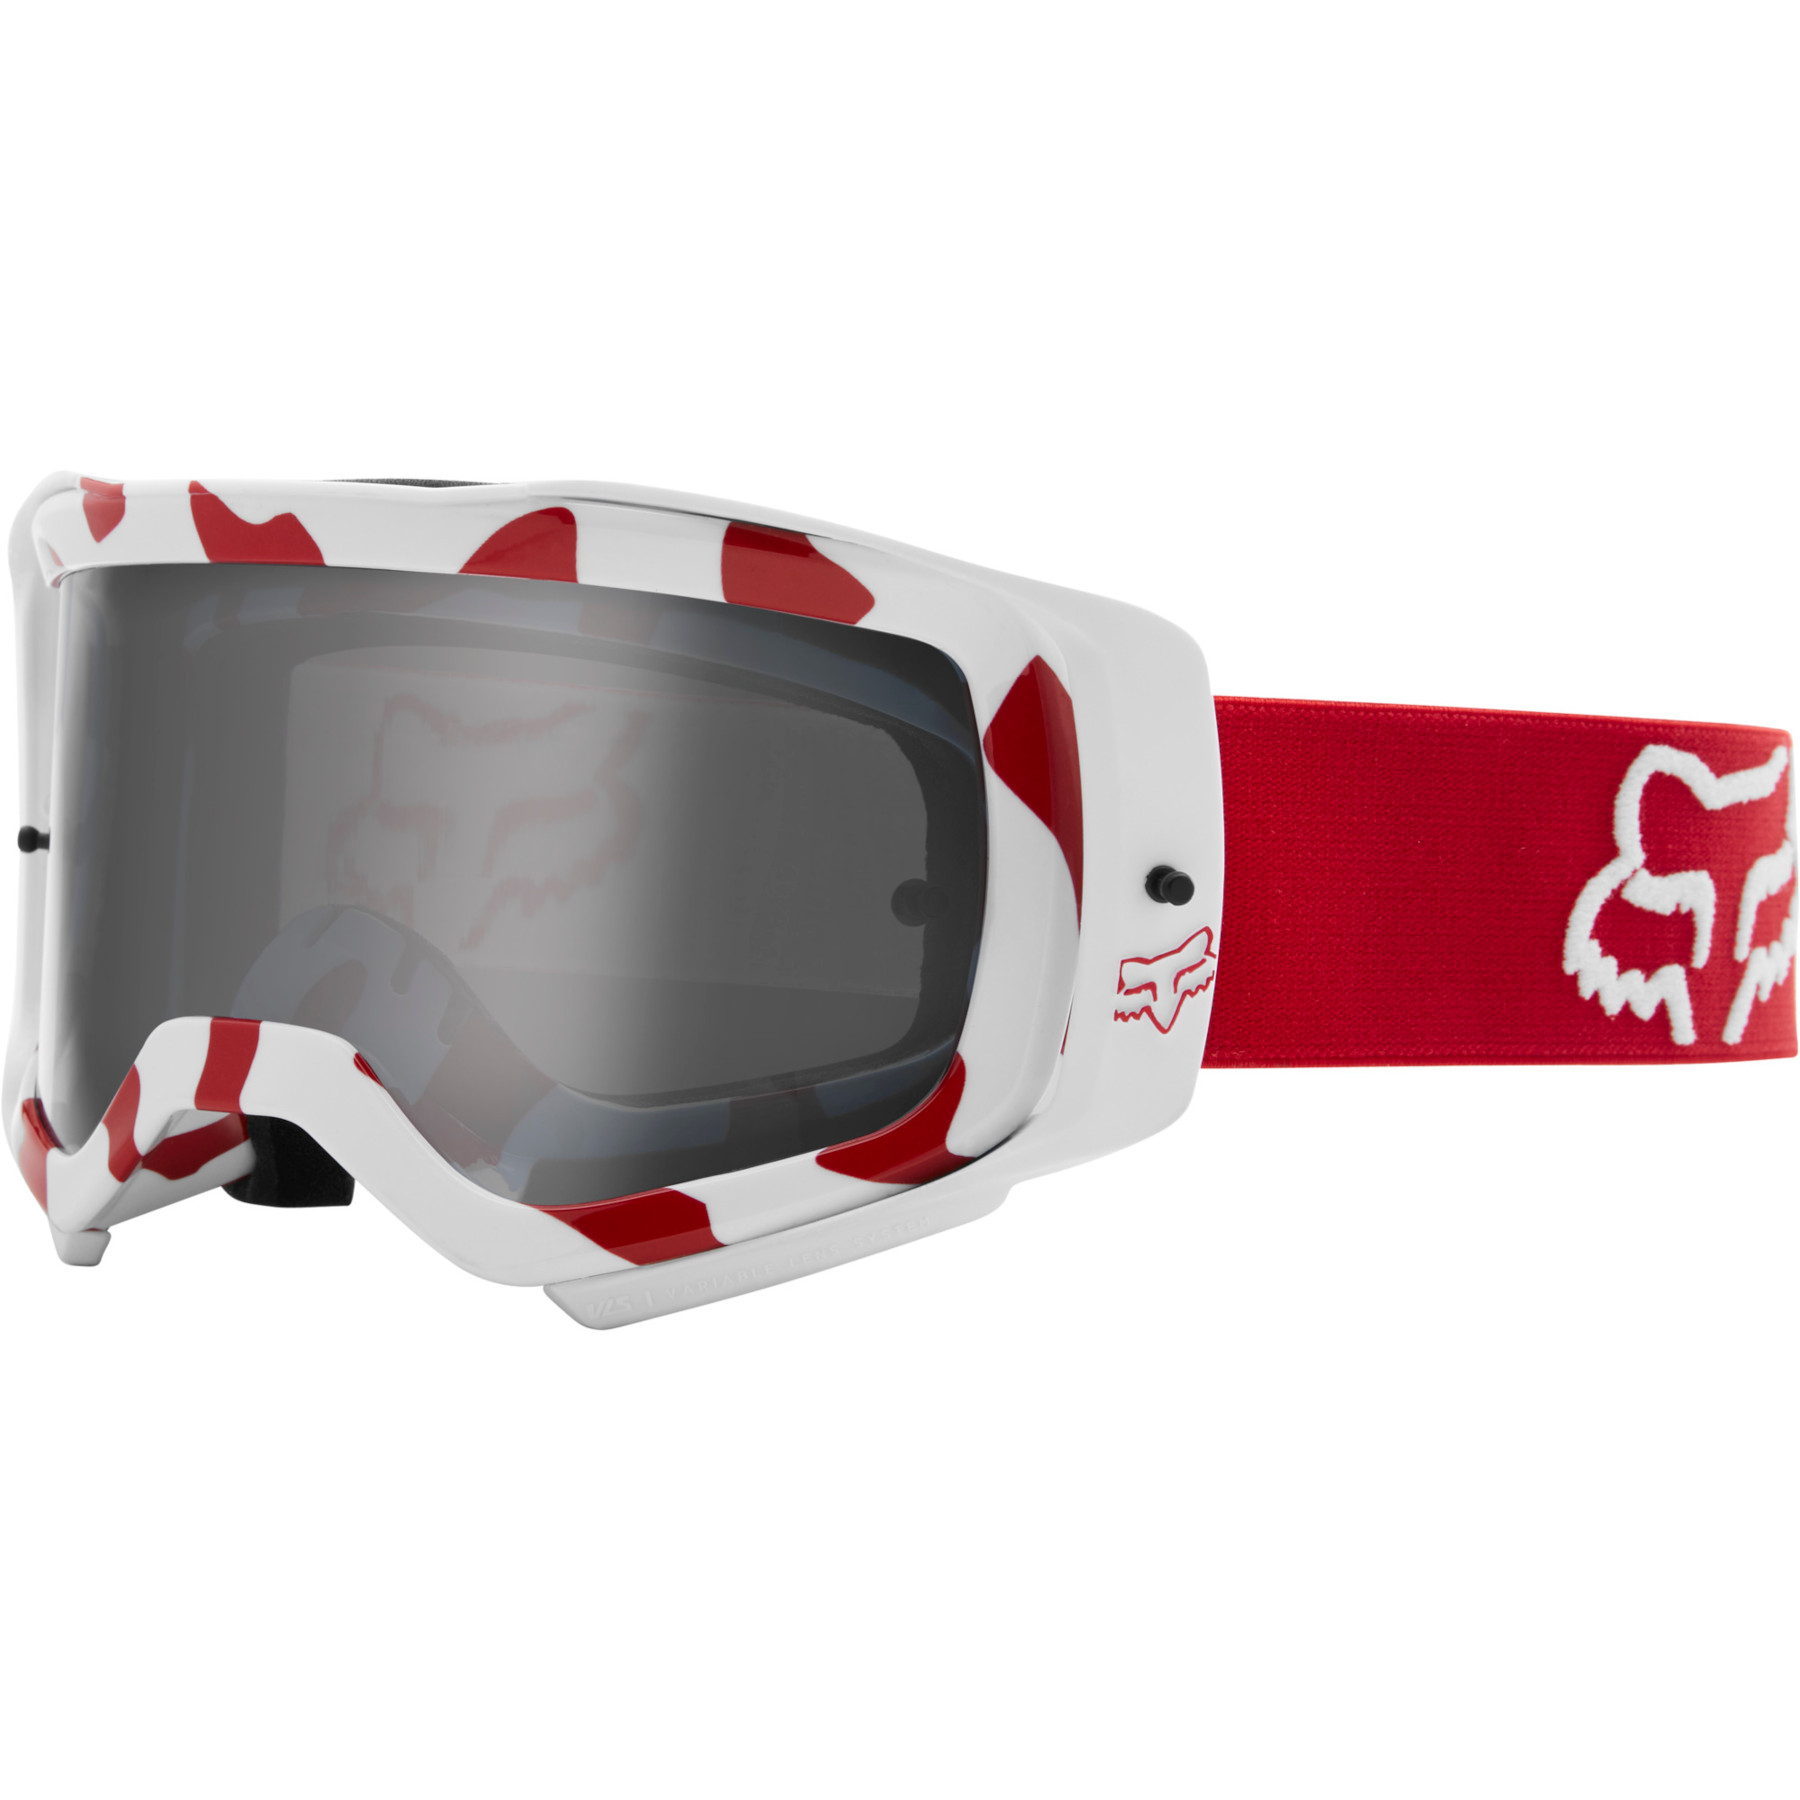 FOX Airspace Stray Race Goggle - flame red - non mirrored